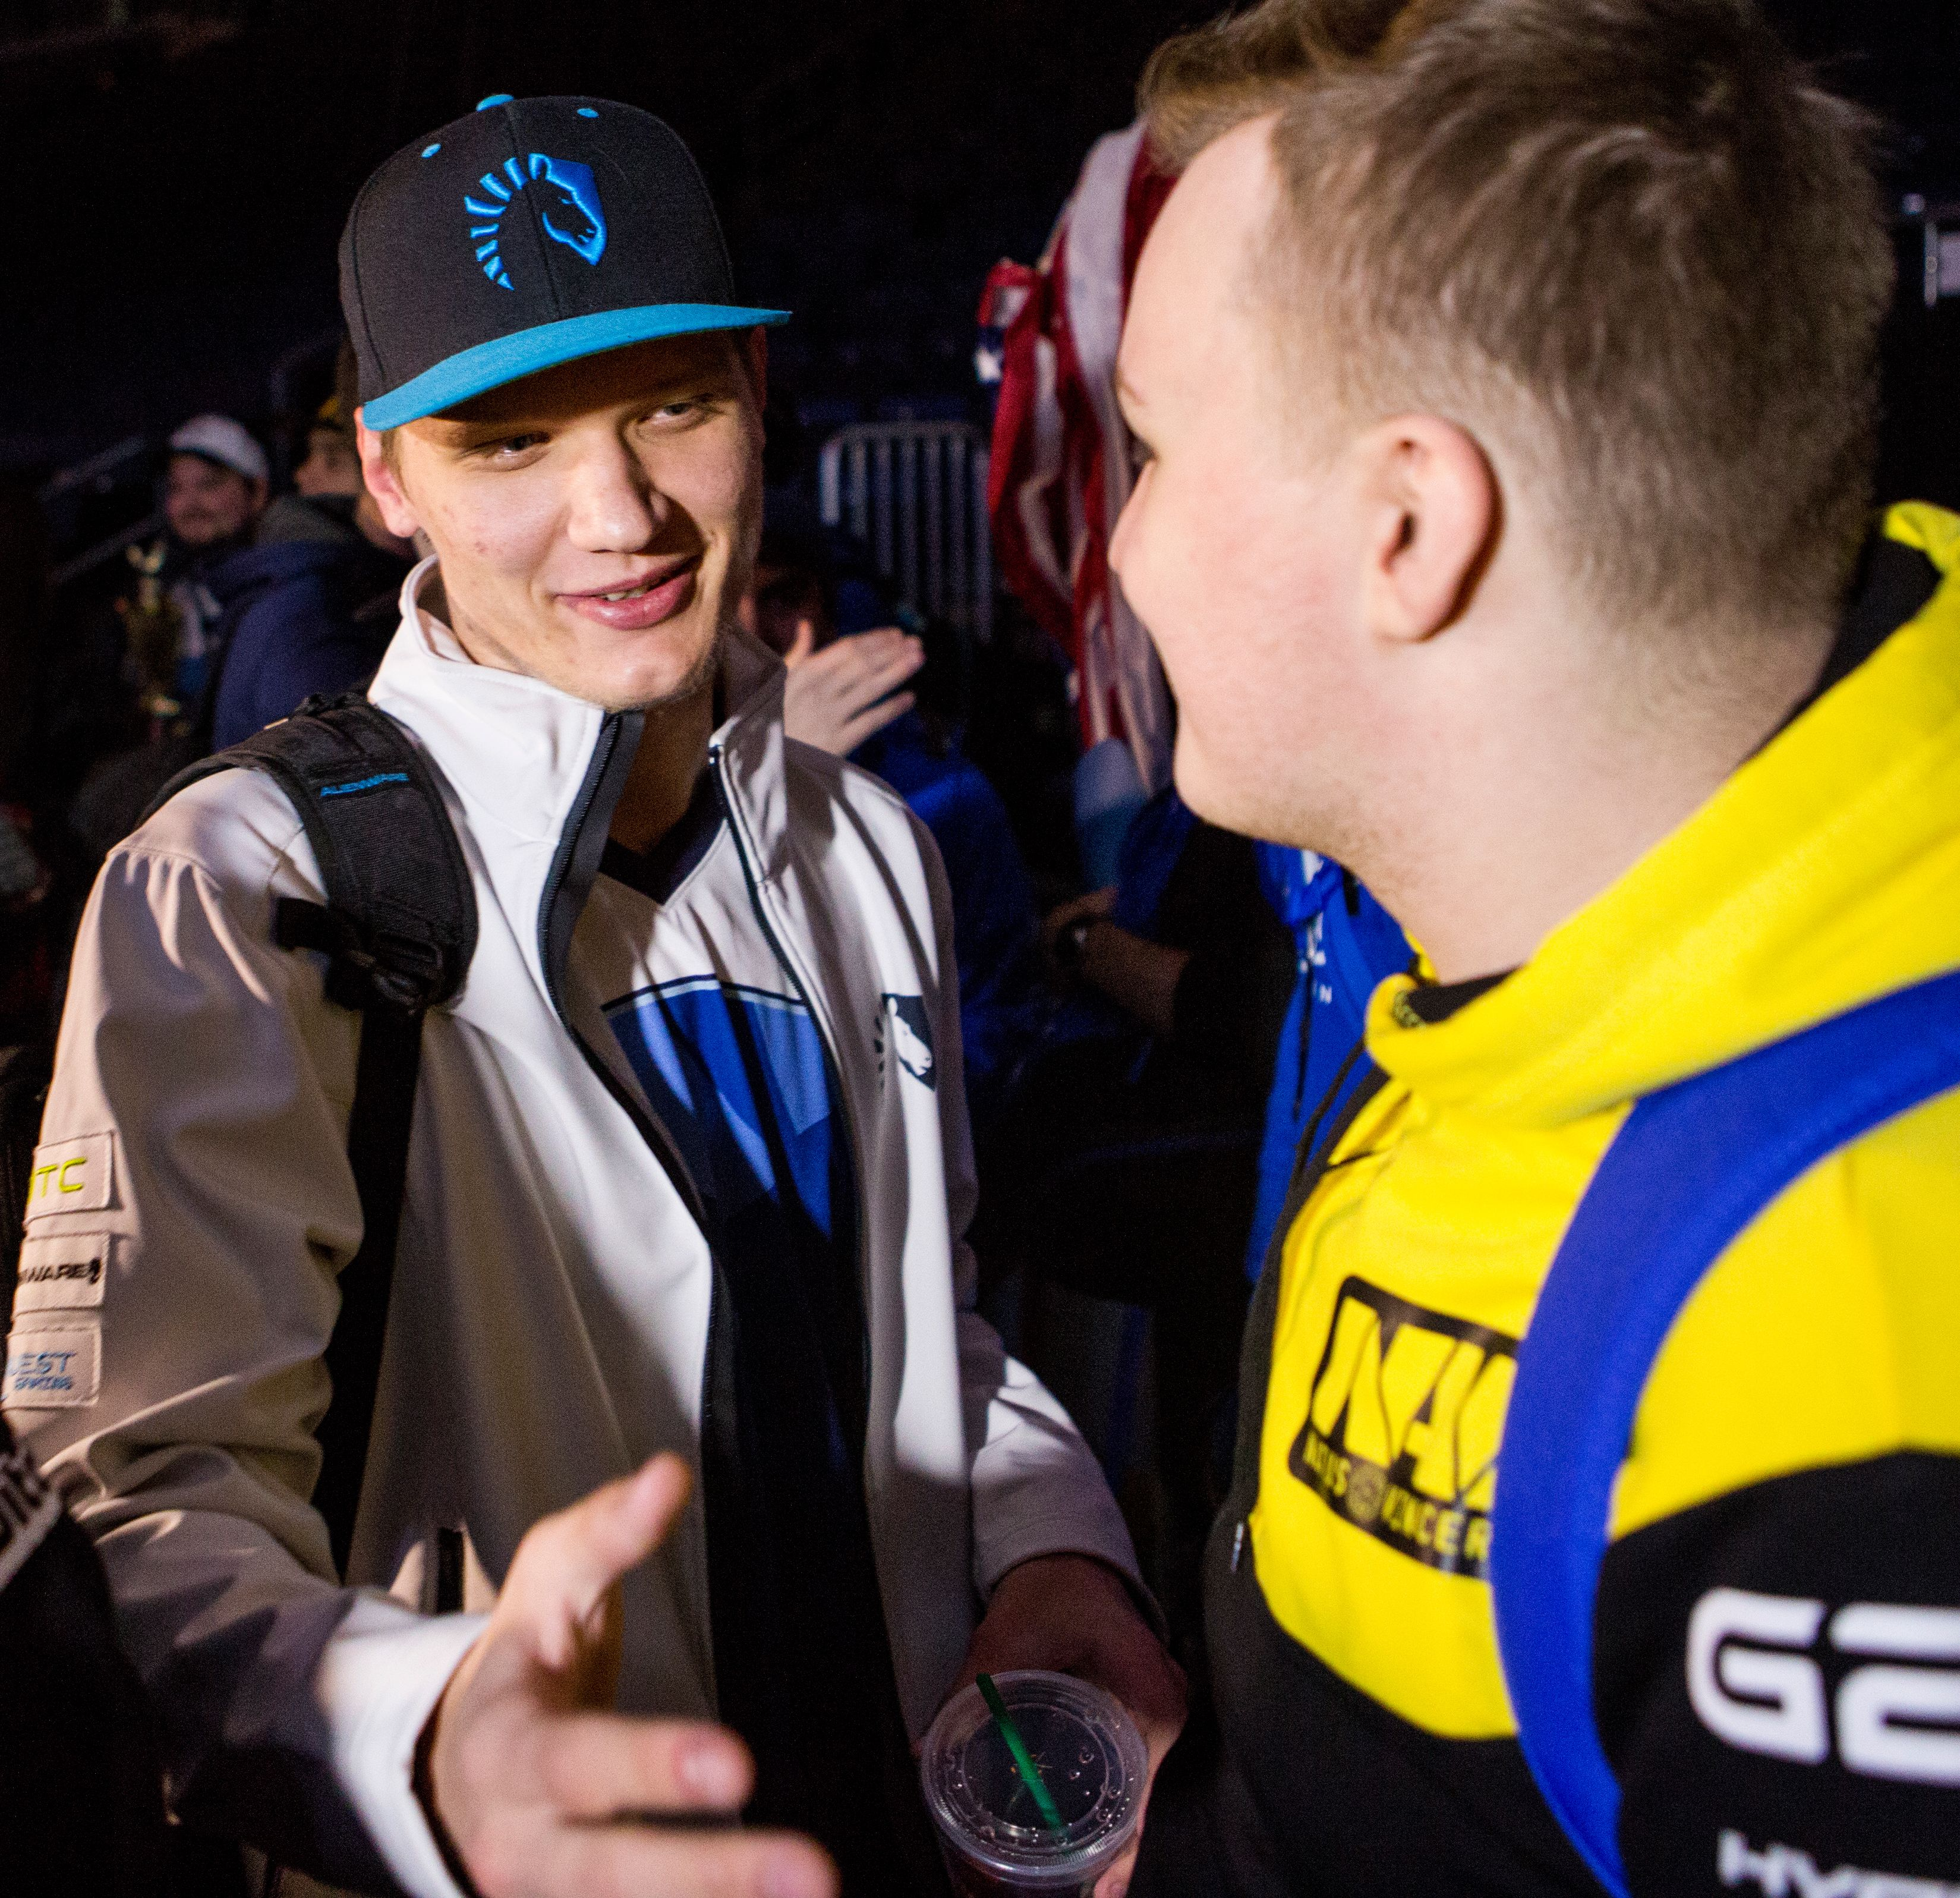 s1mple-s1mple